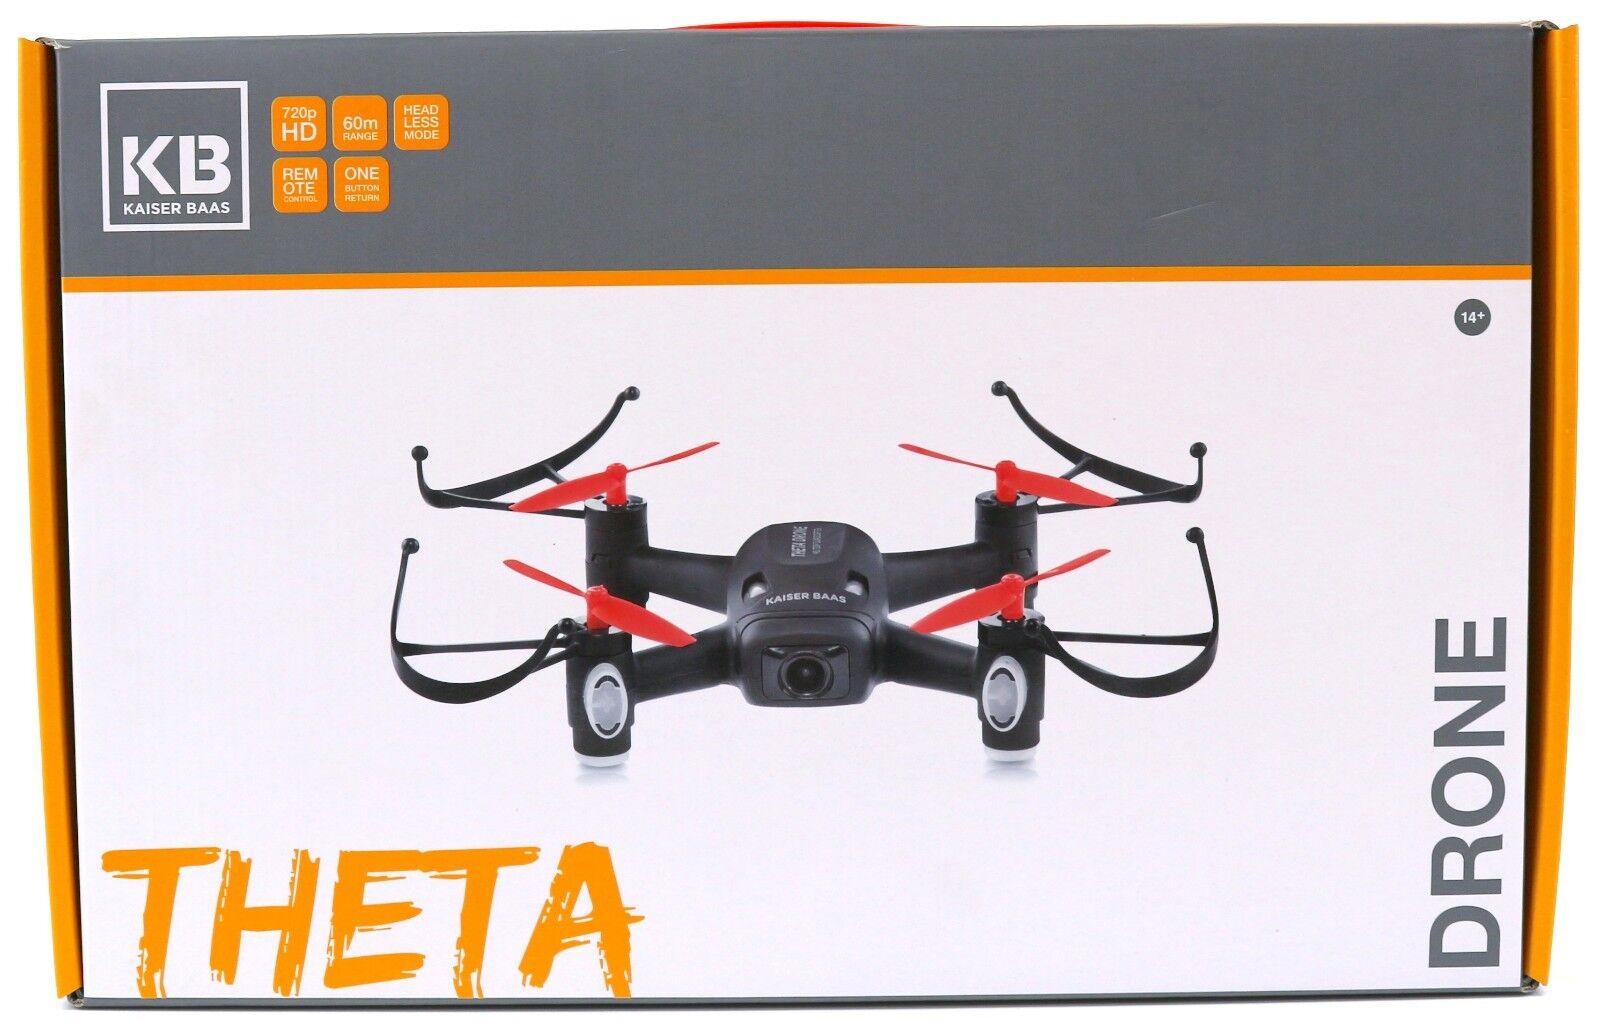 Kaiser Baas Theta Drone Quadcopter With Remote Control 720p HD Camera 60m Range